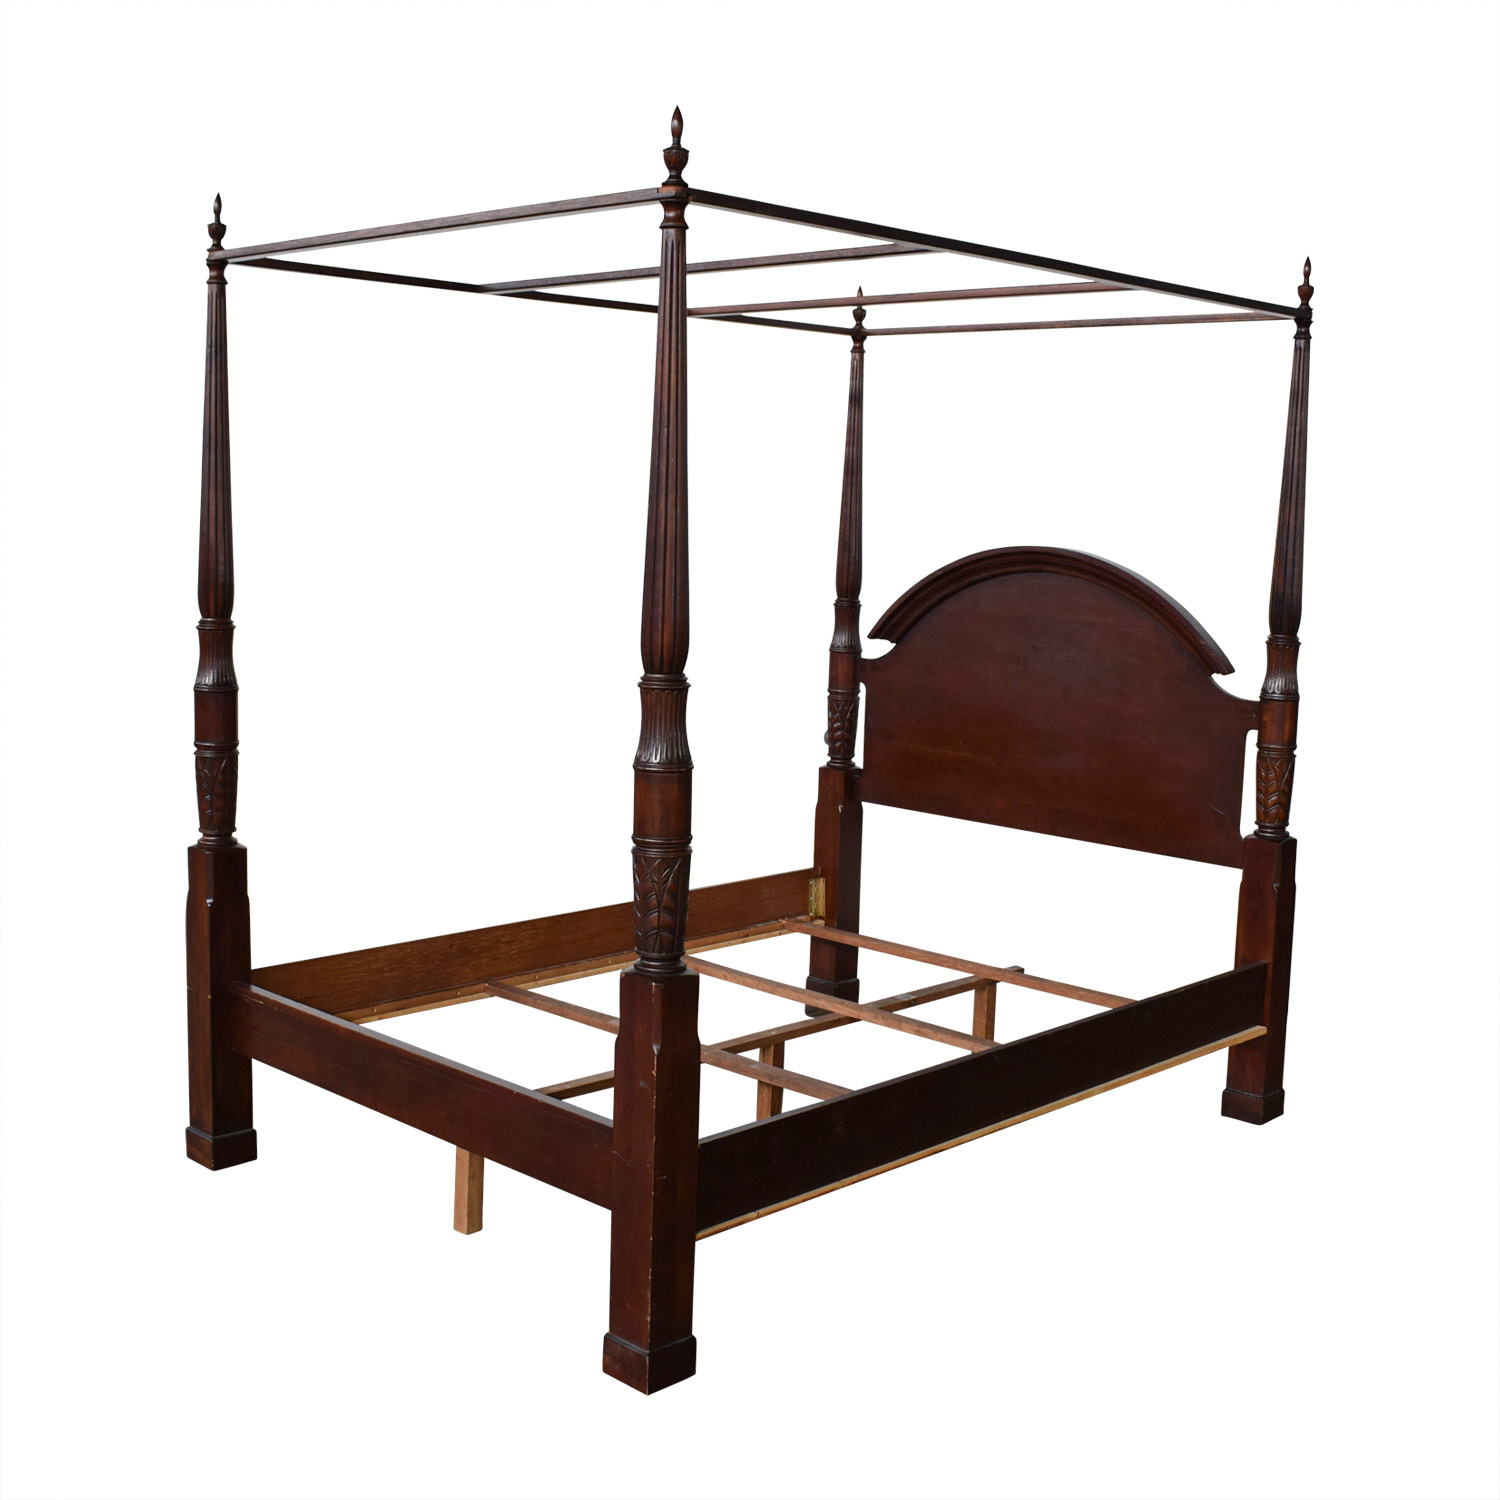 Wood Four Poster Canopy Bed Frame / Beds